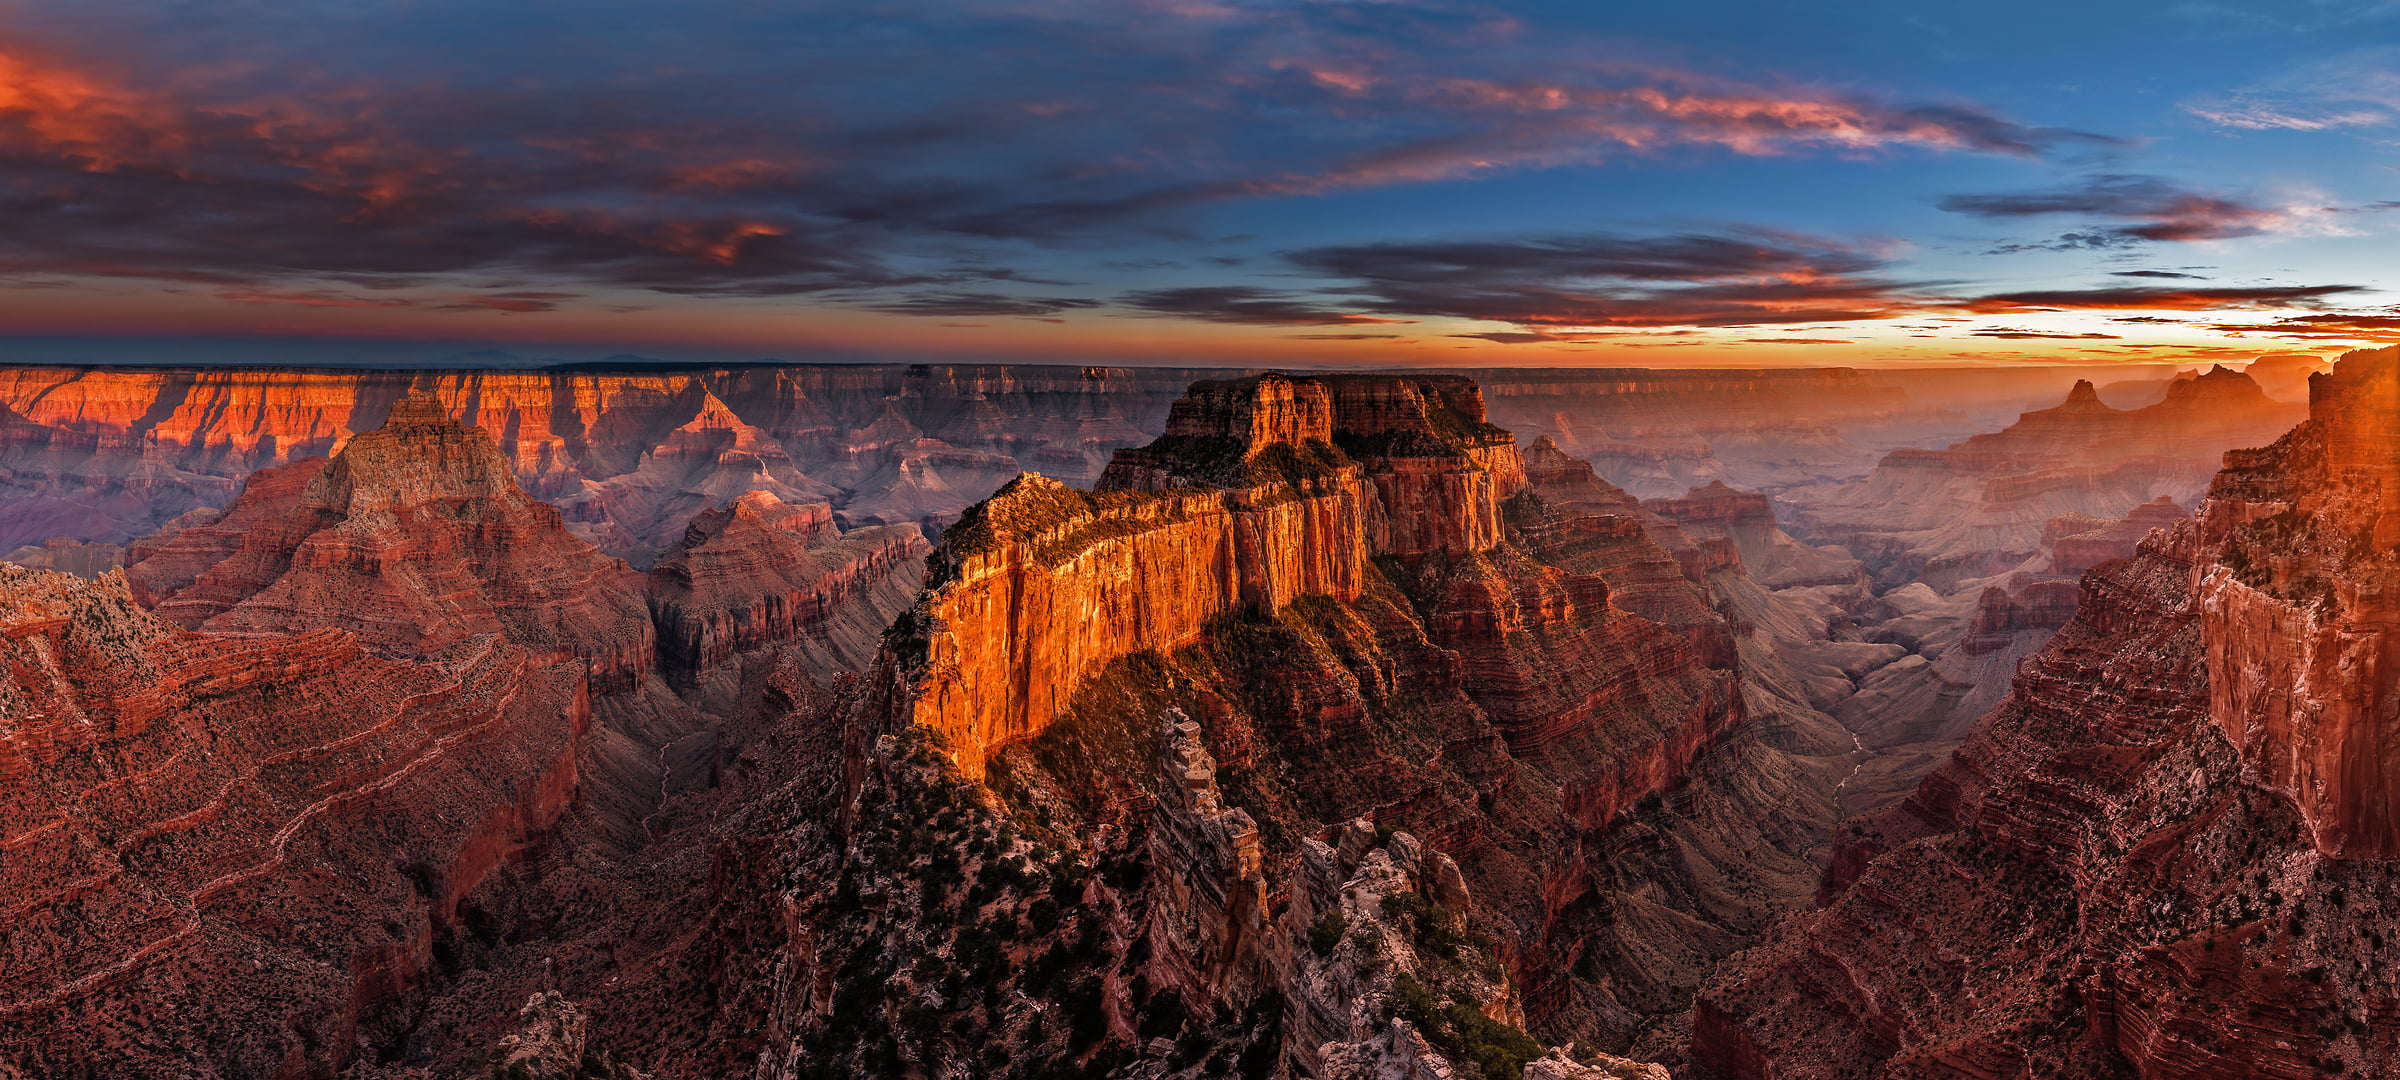 508 megapixels! A very high resolution, large-format VAST photo print of the Grand Canyon at sunset; fine art landscape photo created by Chris Collacott in Grand Canyon National Park, Arizona